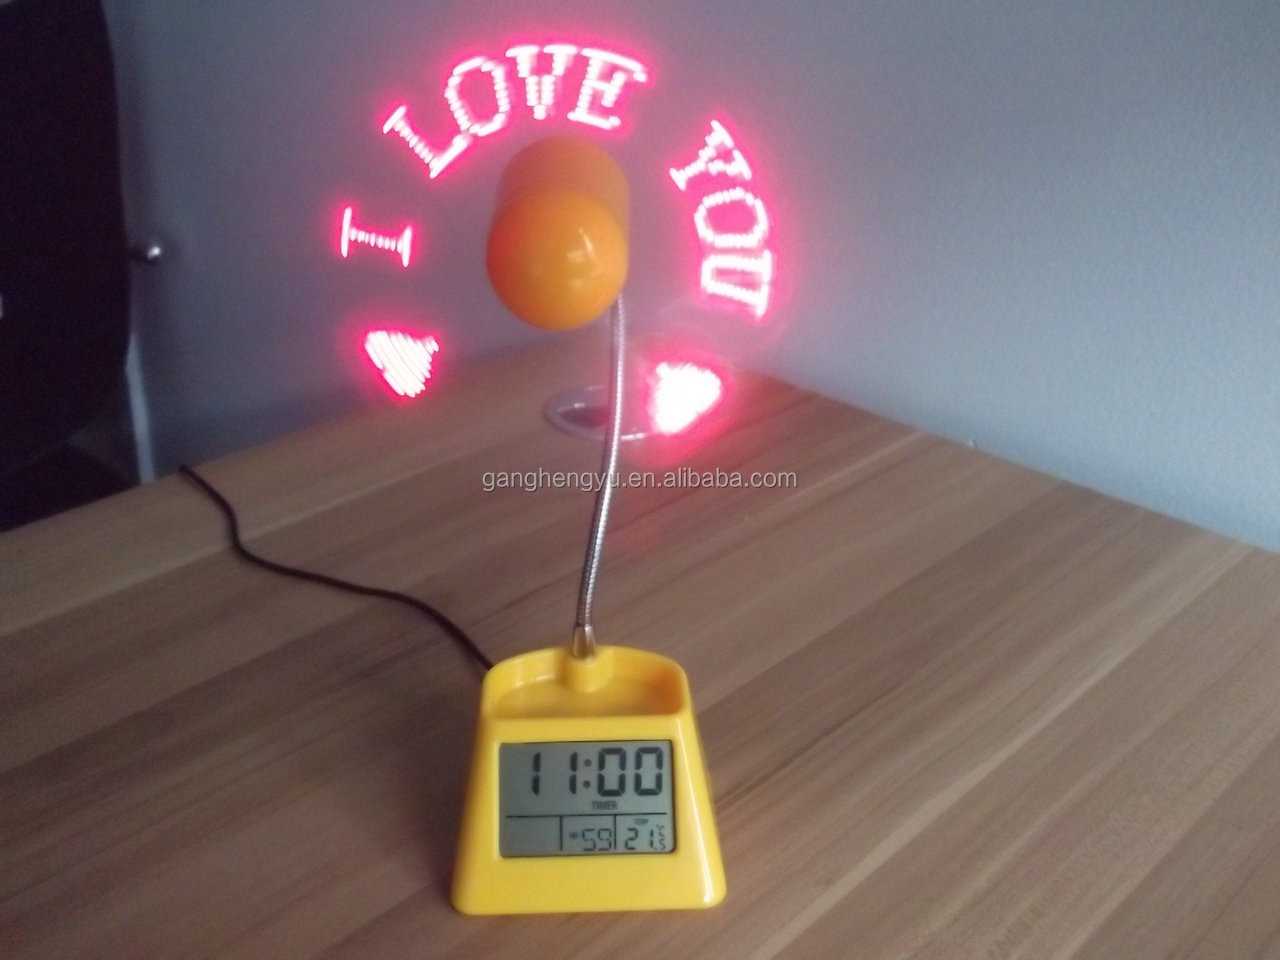 product detail clock fan thermometer digital usb led